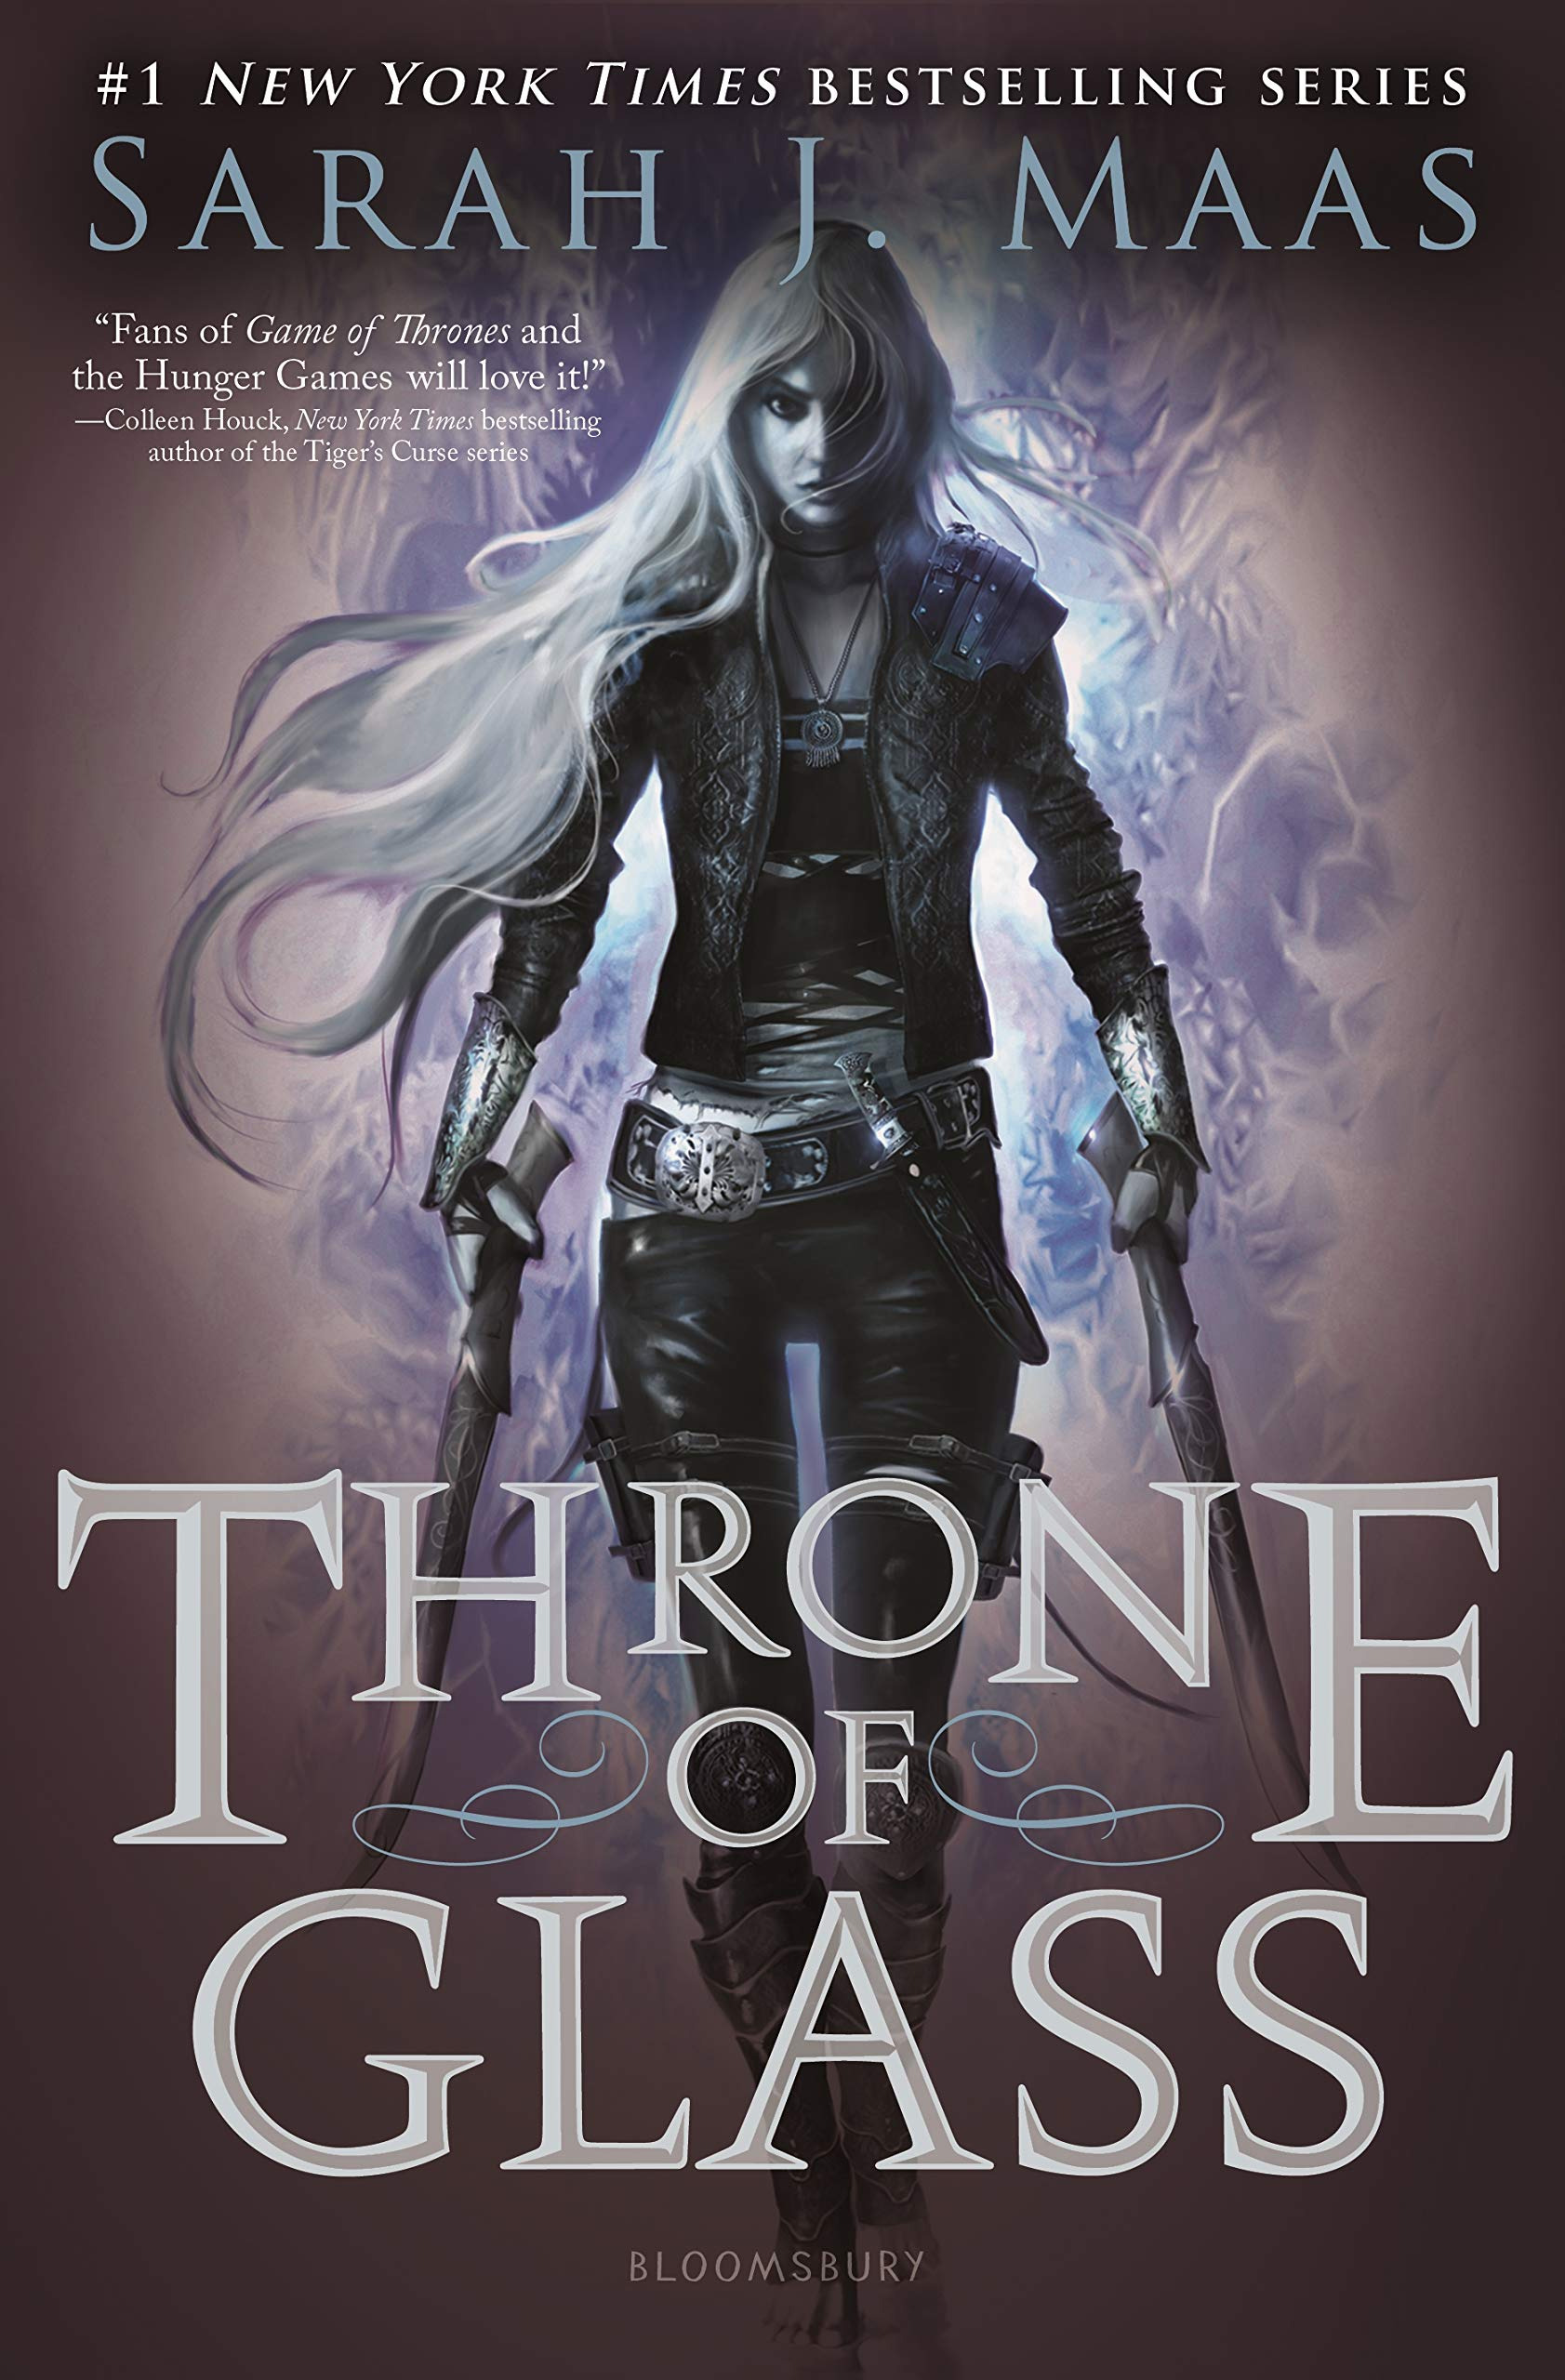 Throne of Glass: Amazon.de: Maas, Sarah J.: Fremdsprachige Bücher